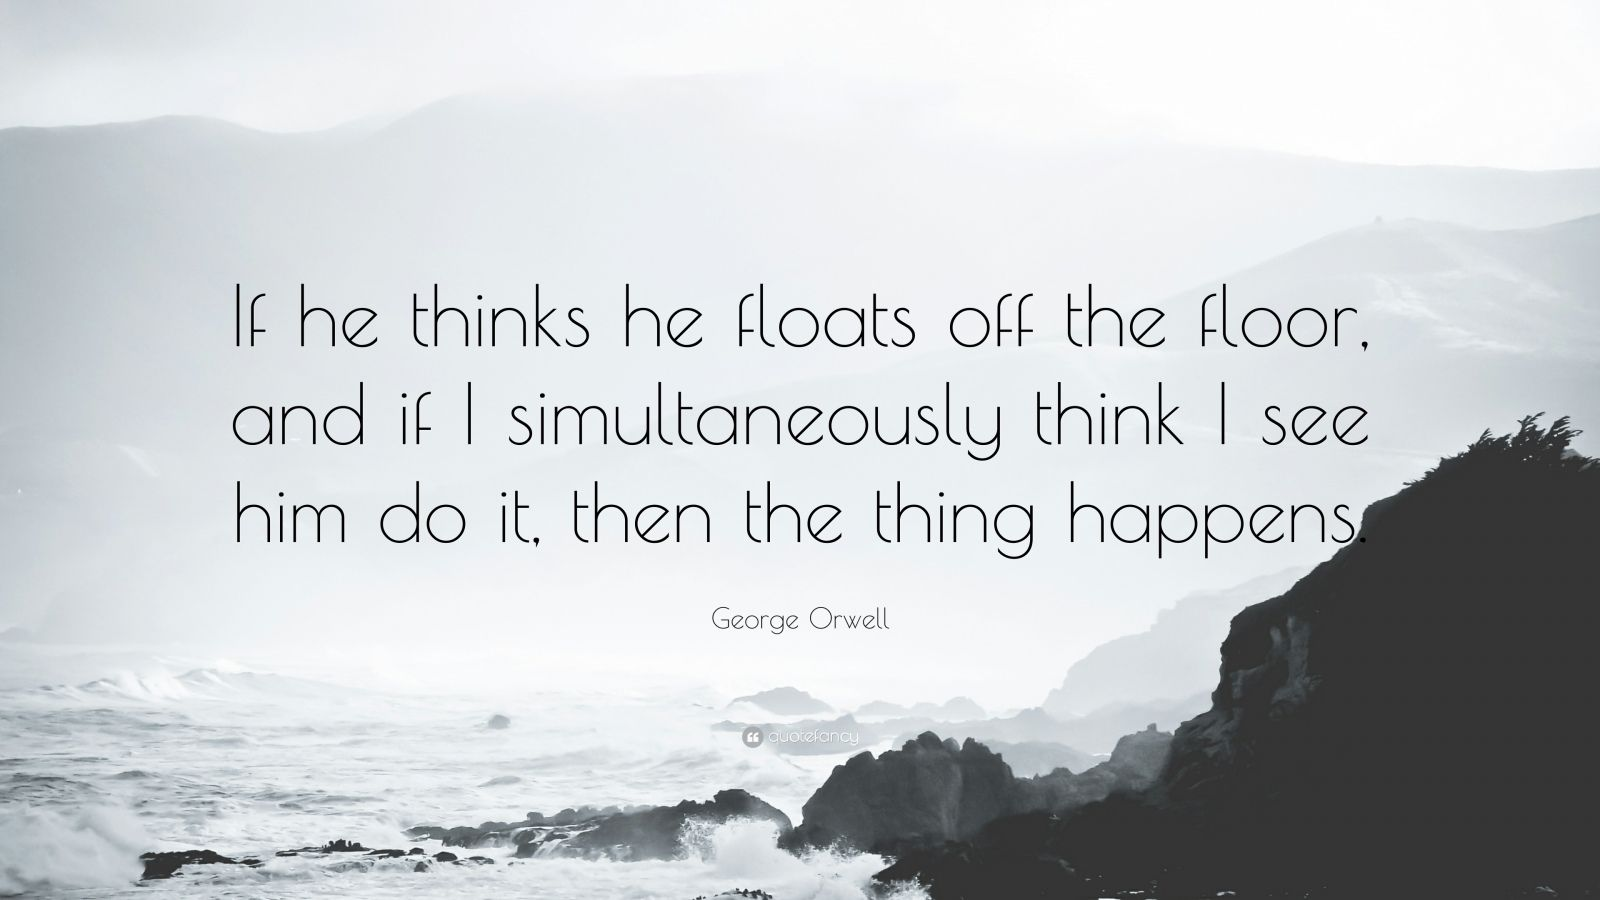 """George Orwell Quote: """"If he thinks he floats off the floor, and if I simultaneously think I see him do it, then the thing happens."""""""